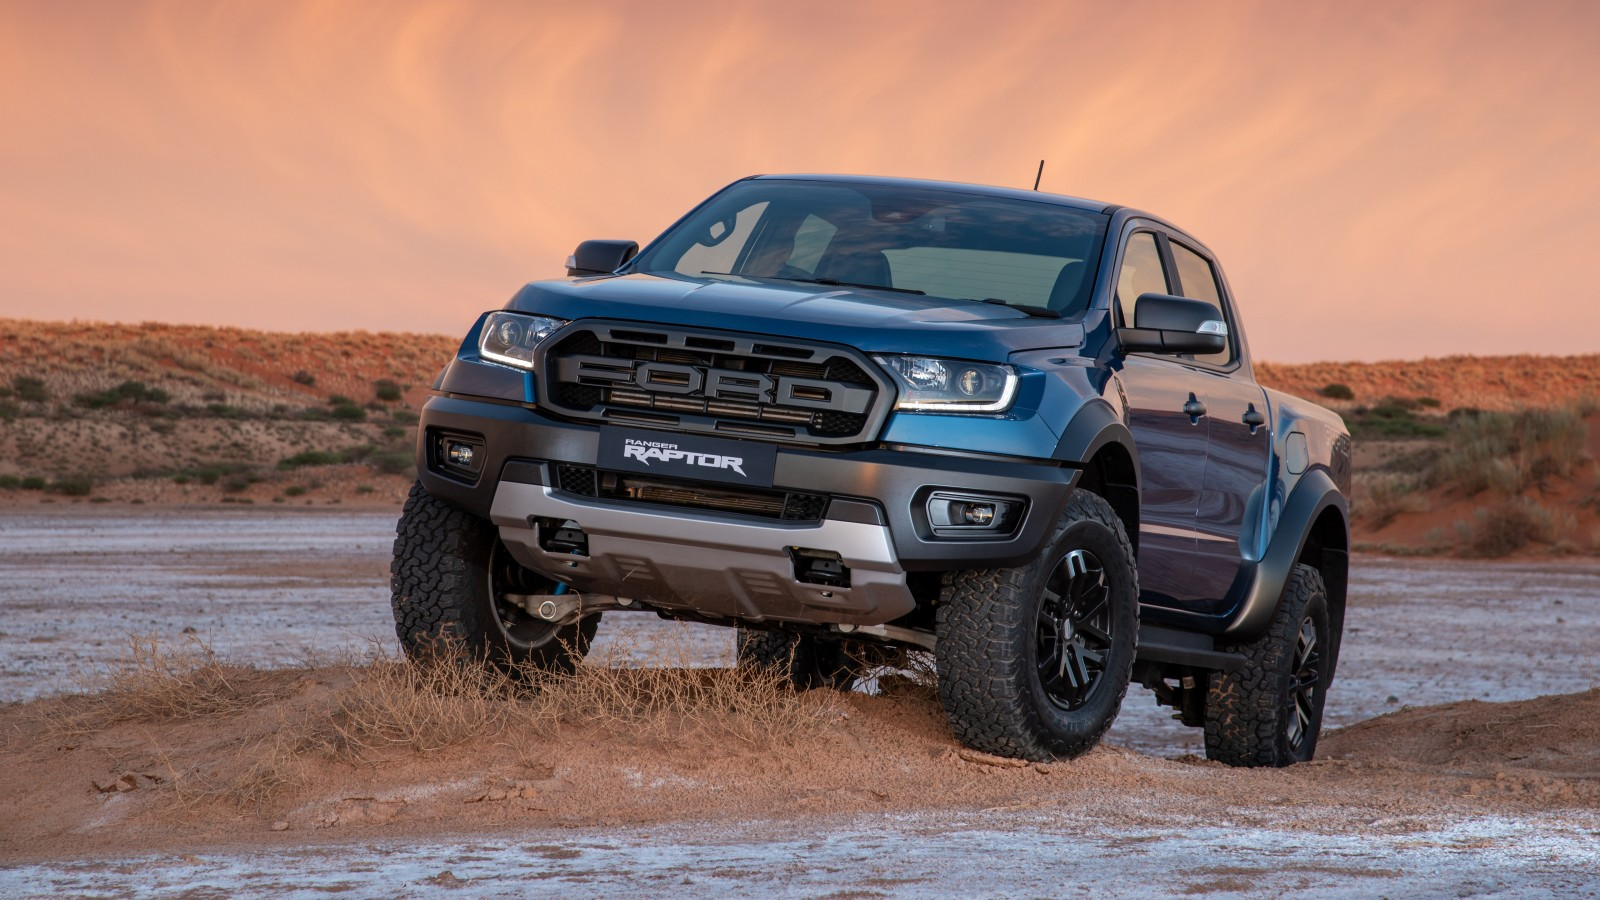 Ford Ranger Raptor 2019 Wallpaper | HD Car Wallpapers | ID ...